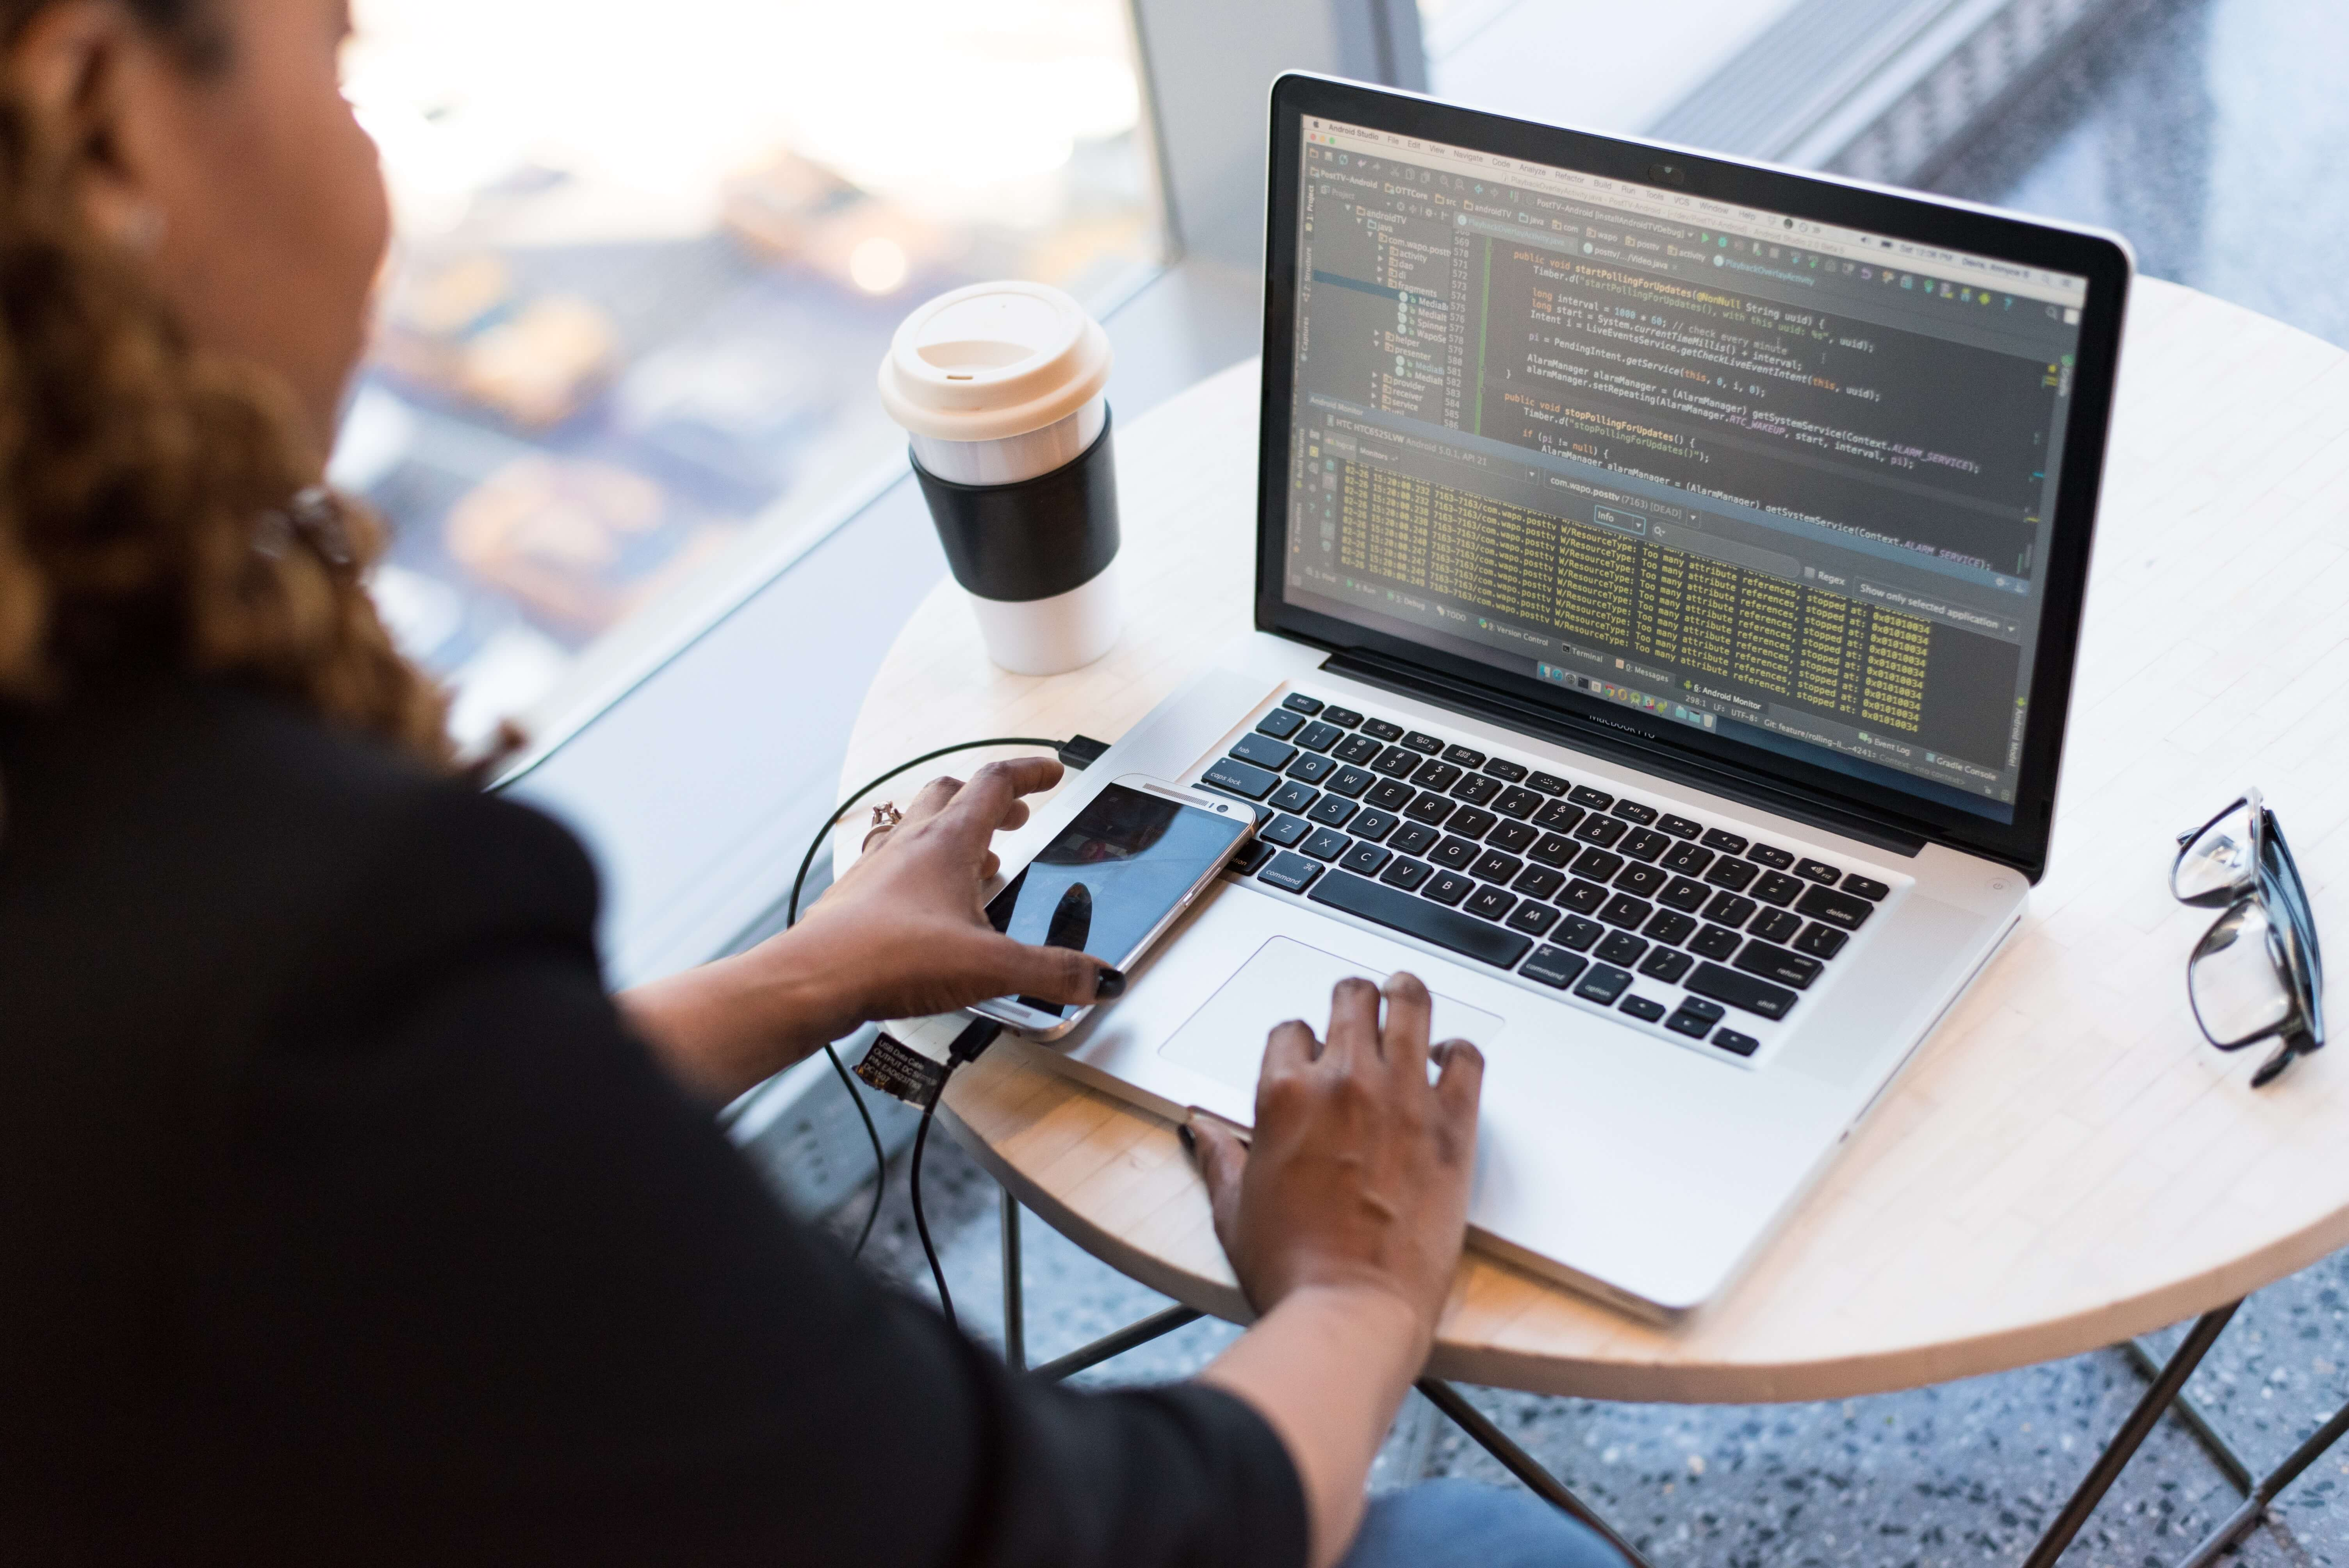 Why remote working will prove to be difficult in Africa